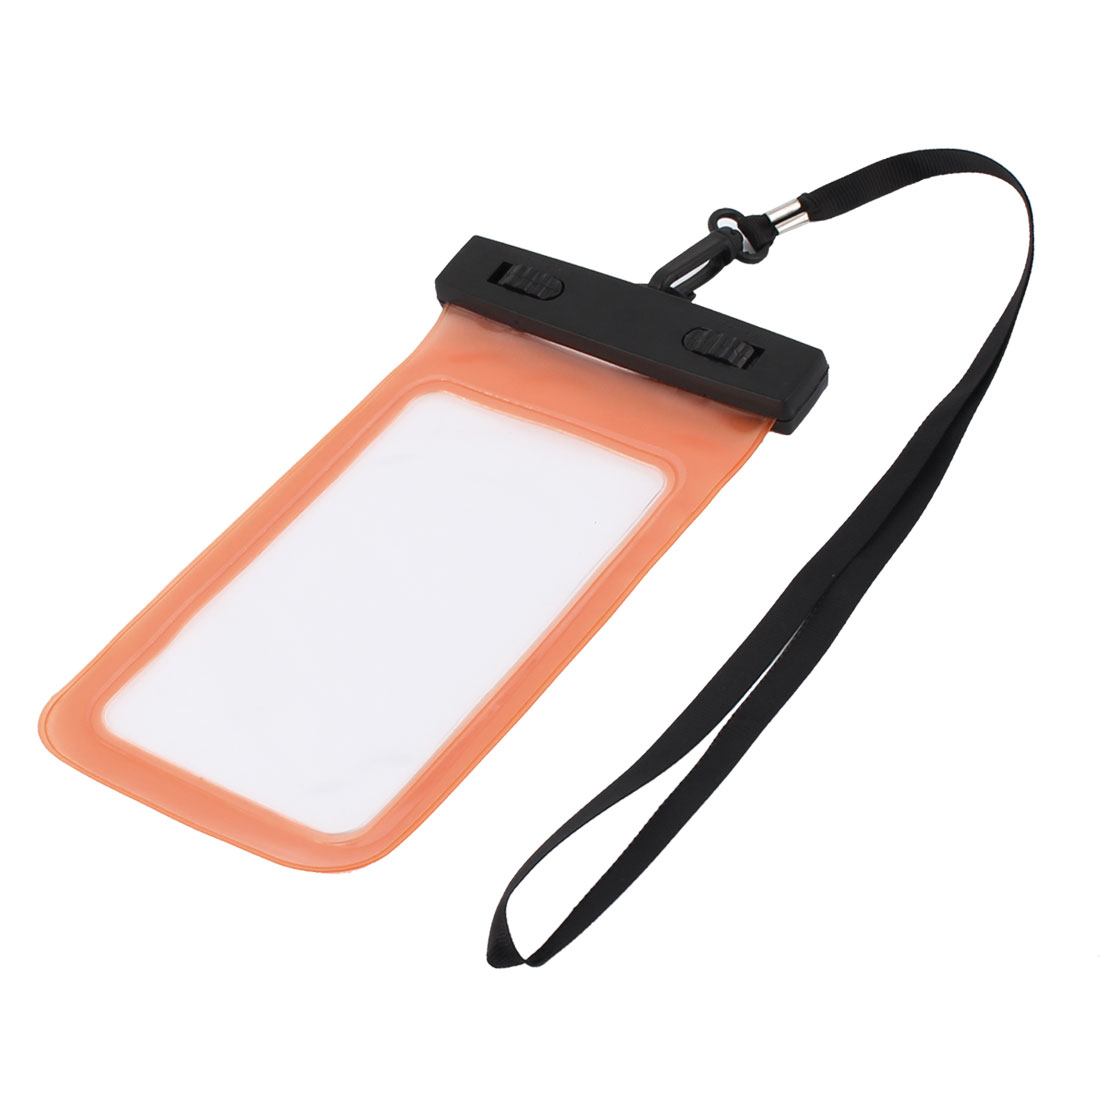 Underwater Cell Phone Water Resistance Case Bag Pouch Protective Holder Orange